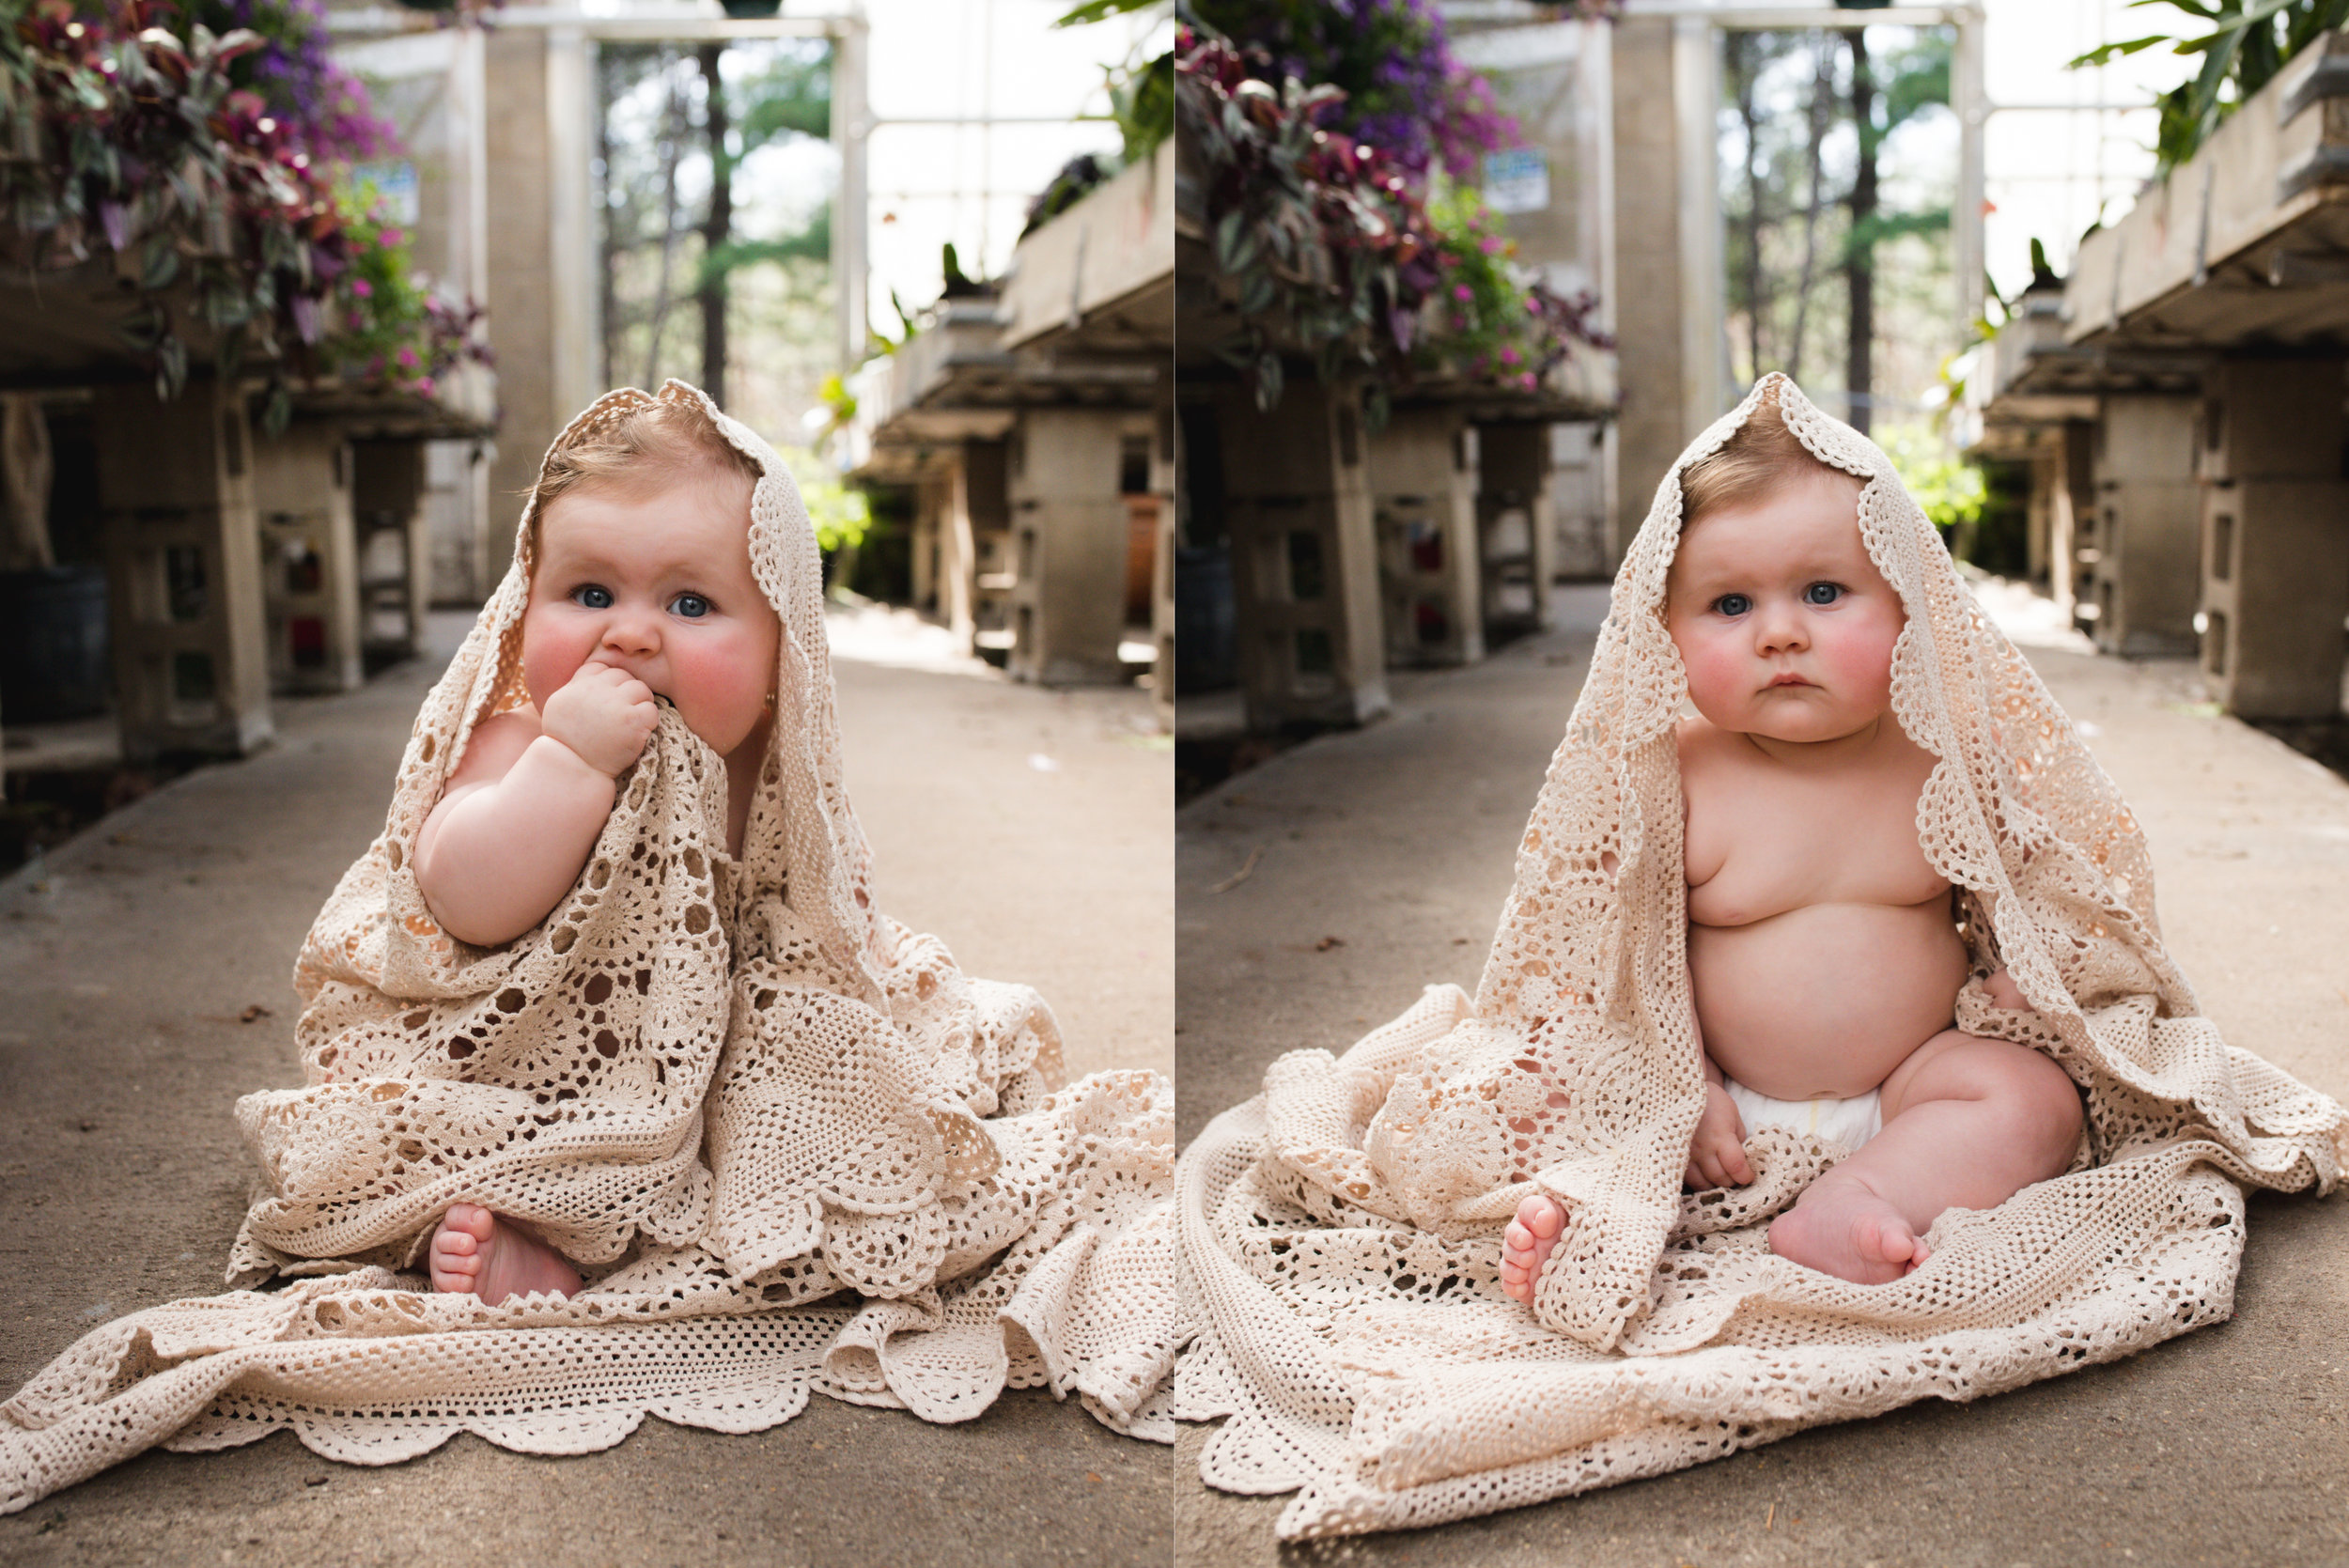 Baby girl sitting up with doily blanket around her in Cedar Rapids, Iowa.